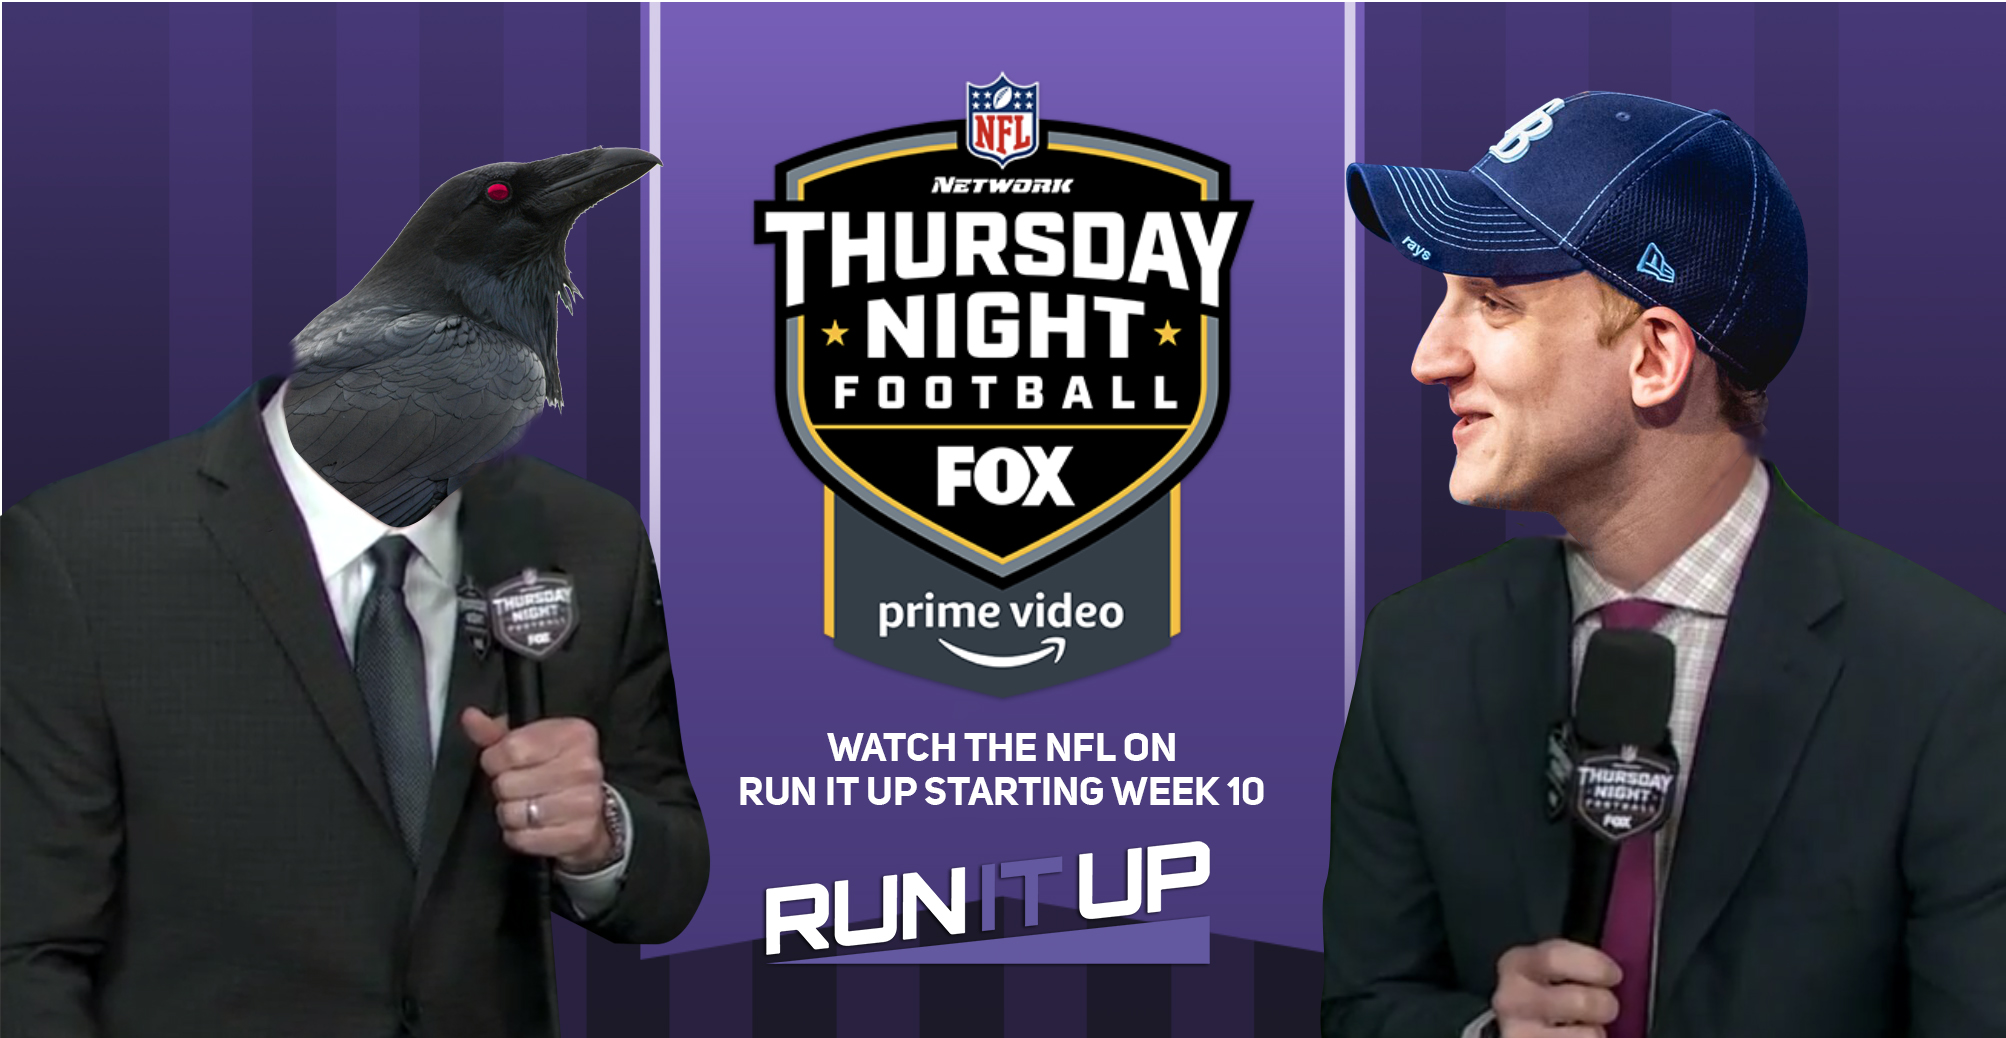 Jason Somerville and Mirko will take control of Thursday Night Football on Twitch this season!